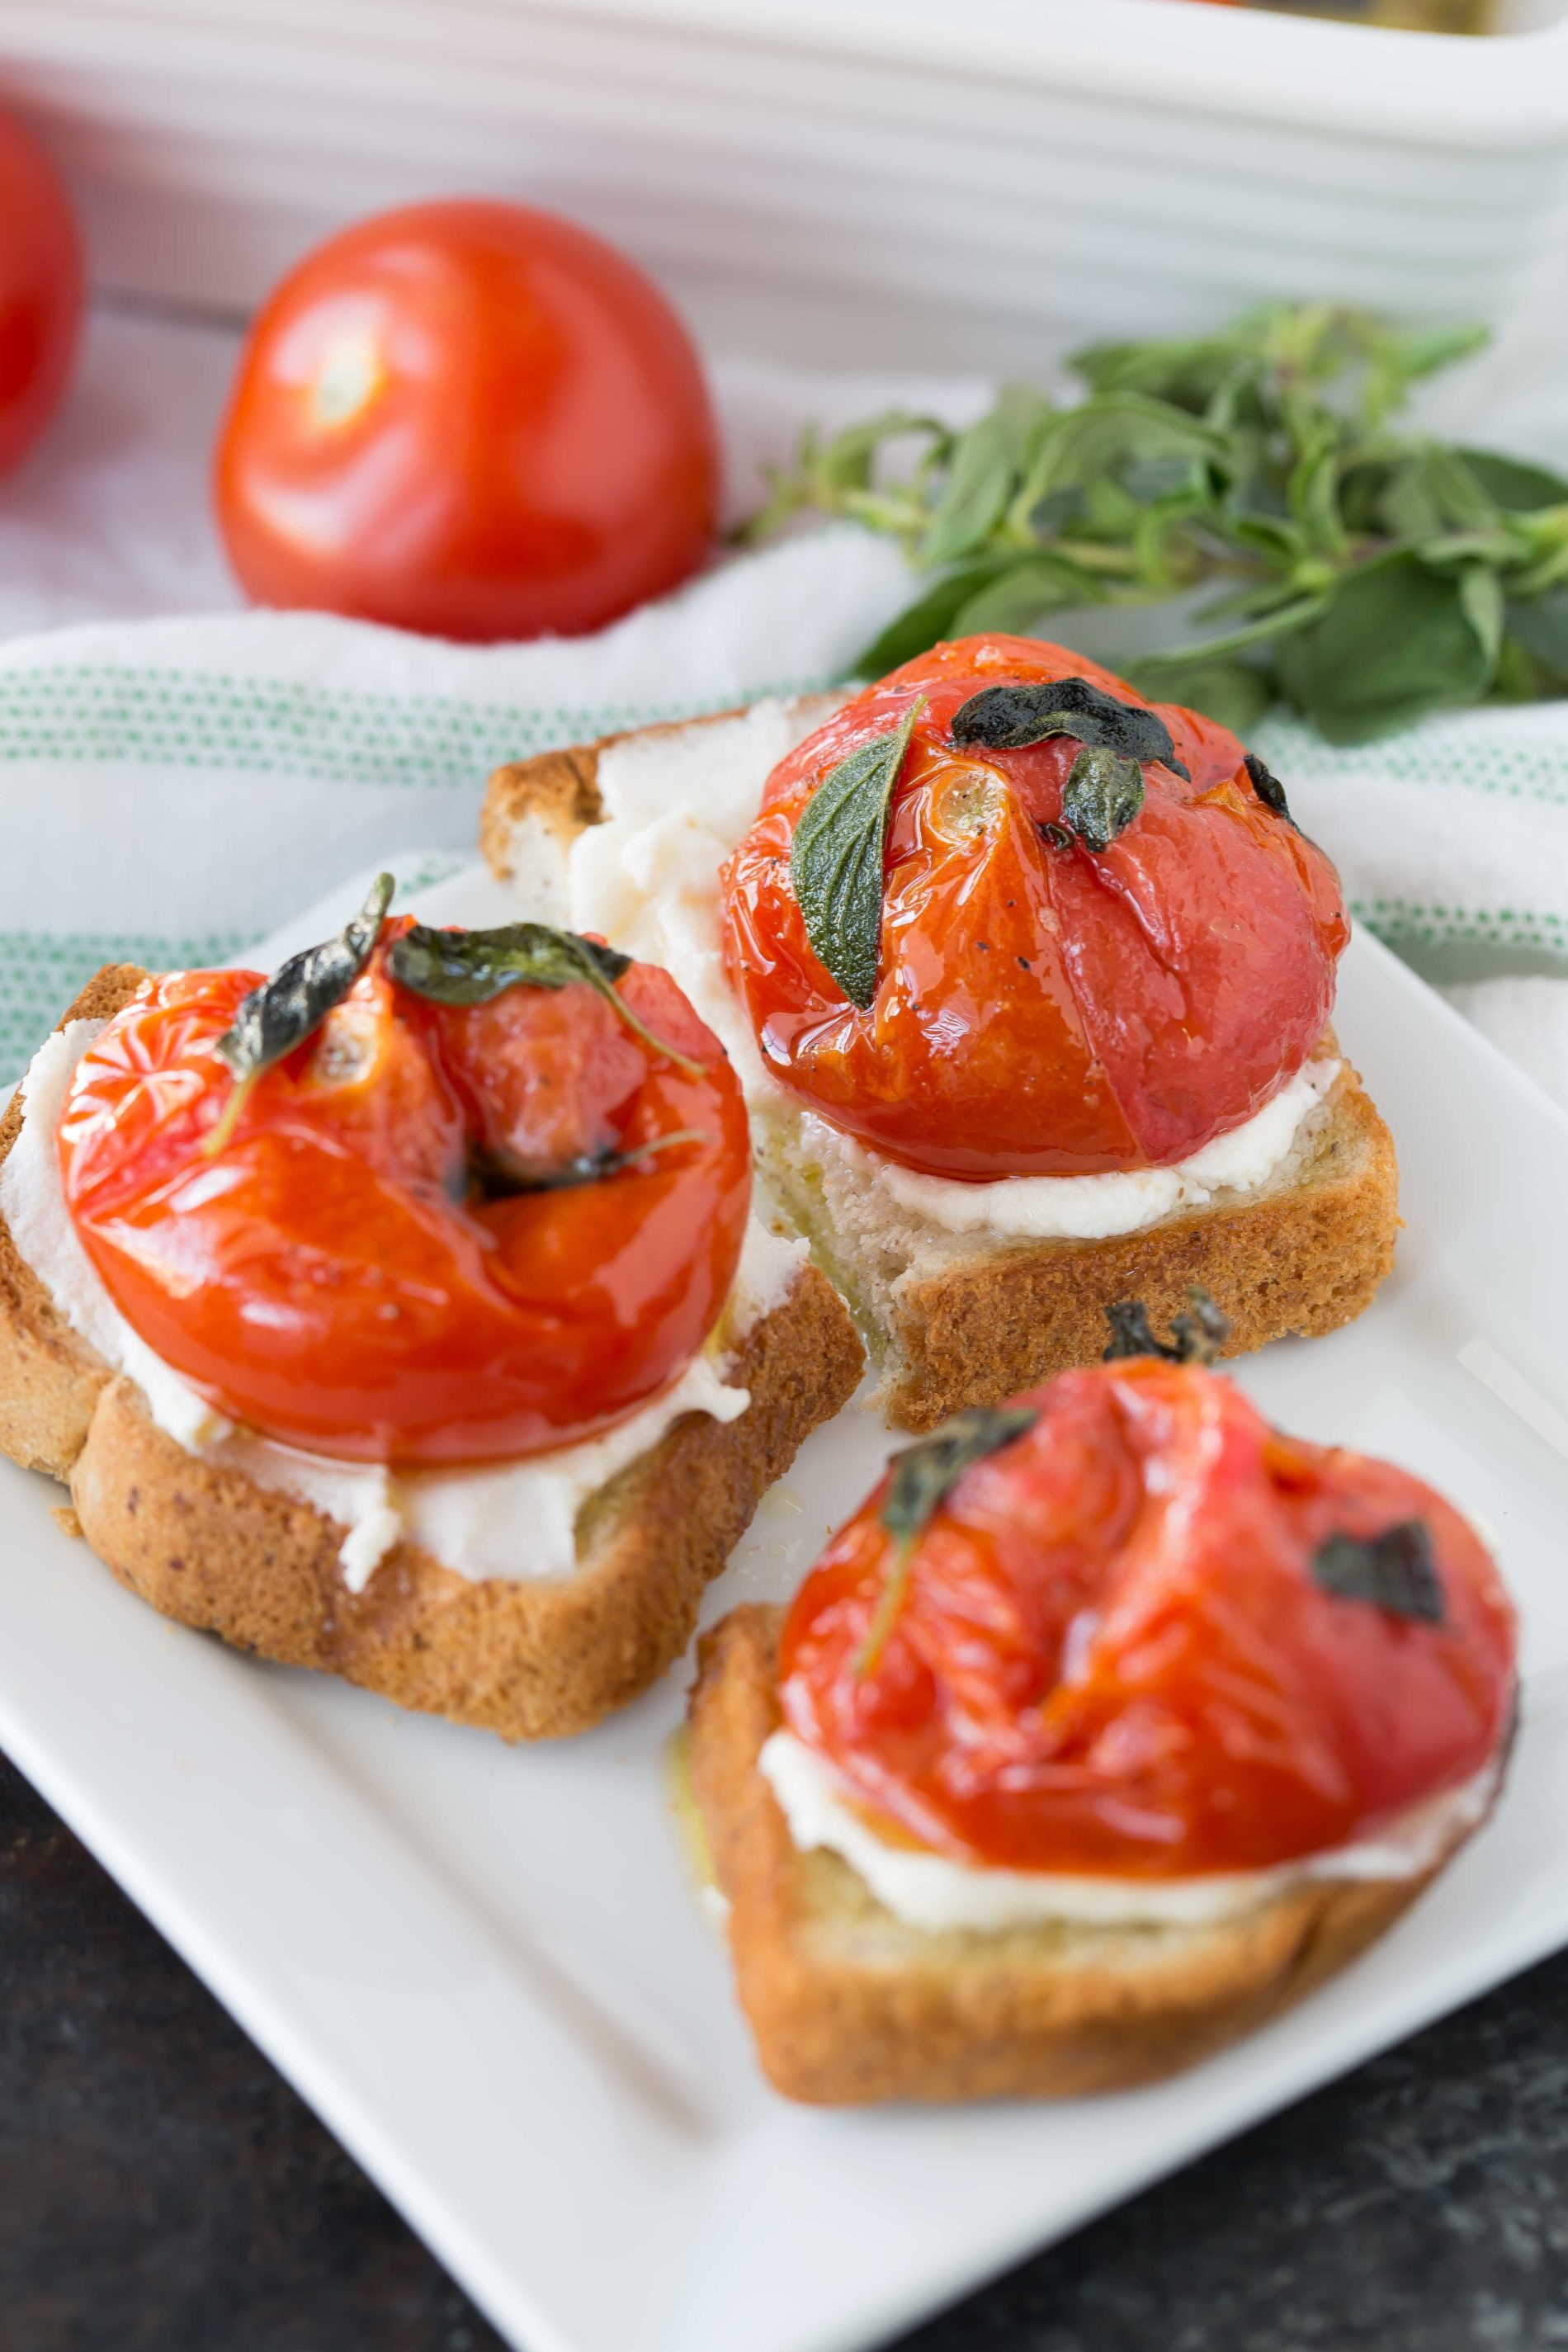 Broiled tomatoes with fresh oregano on toast